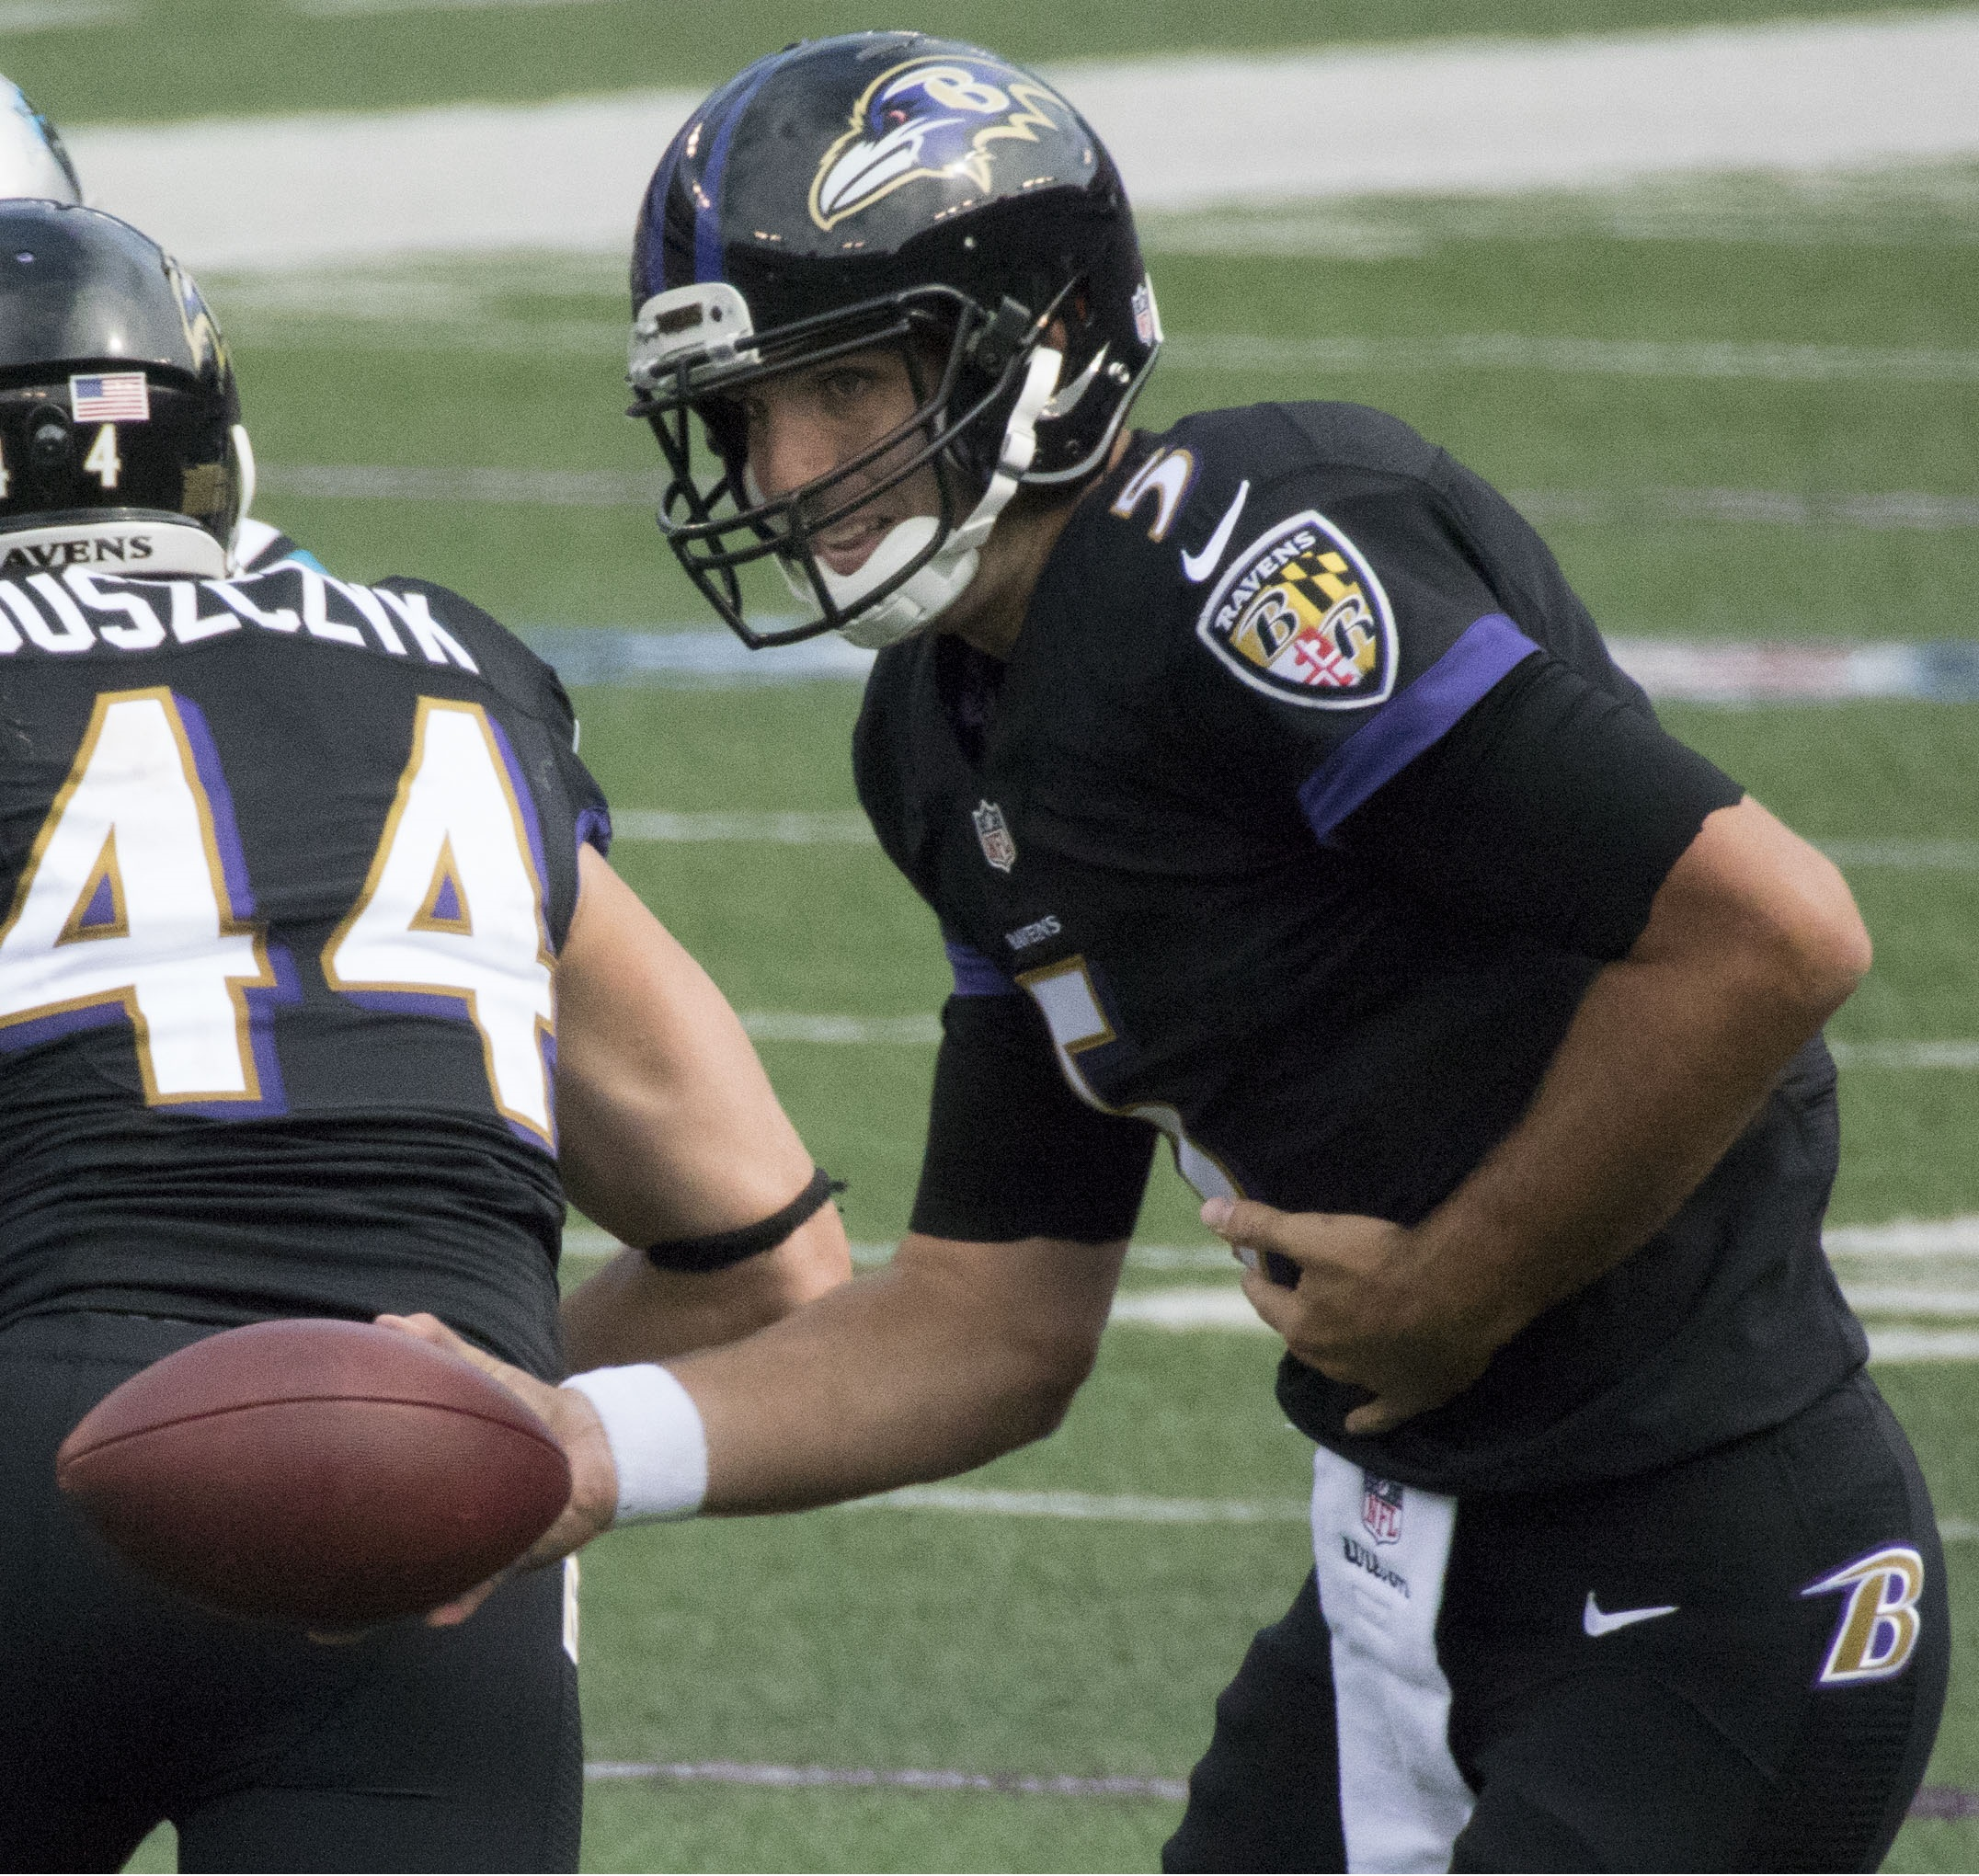 The 33-year old son of father (?) and mother(?) Joe Flacco in 2018 photo. Joe Flacco earned a  million dollar salary - leaving the net worth at 35 million in 2018